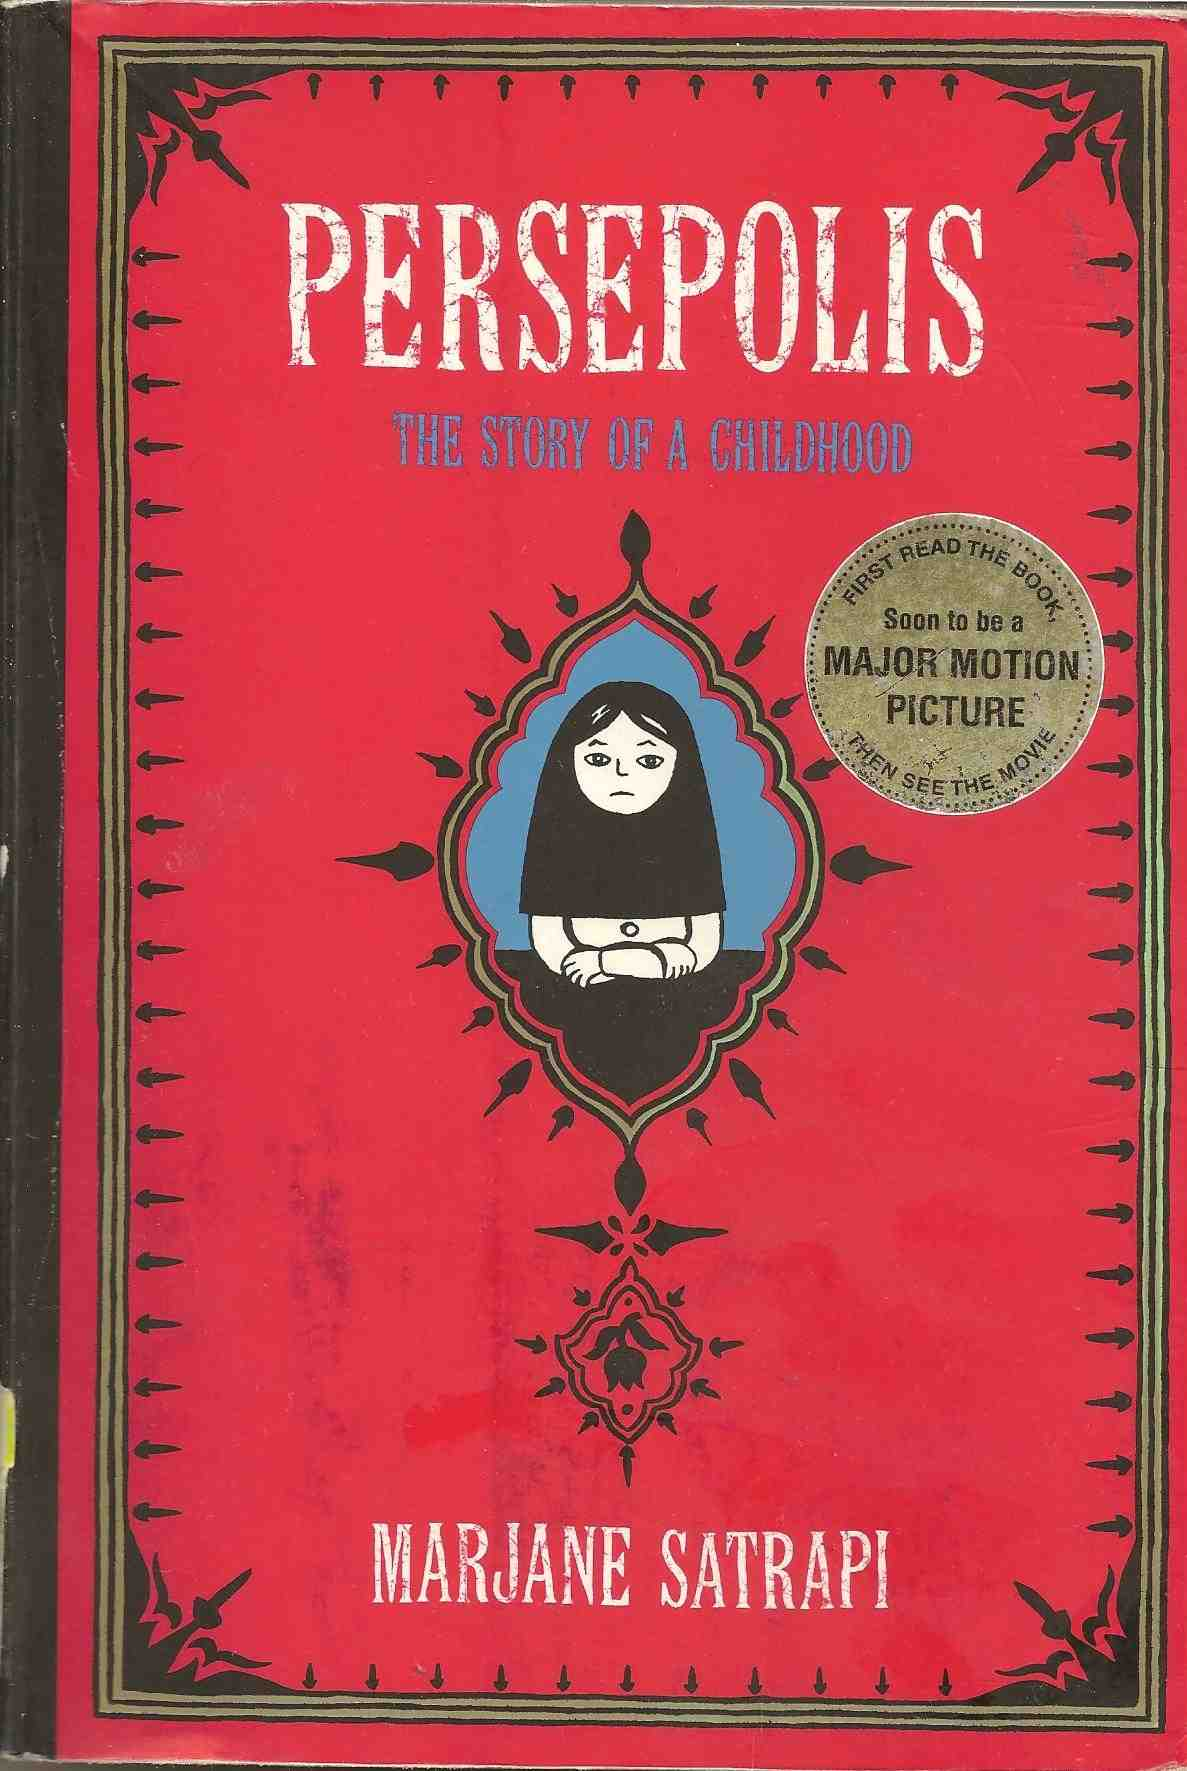 a graphic novel analysis of persepolis by marjane satrapi The persepolis 2: the story of a return community note includes chapter-by- chapter summary and analysis, character list, theme list, historical context persepolis 2 is the second novel written by marjane satrapi persepolis was liked by many, especially that it is one of the few graphic memoirs ever written in history.